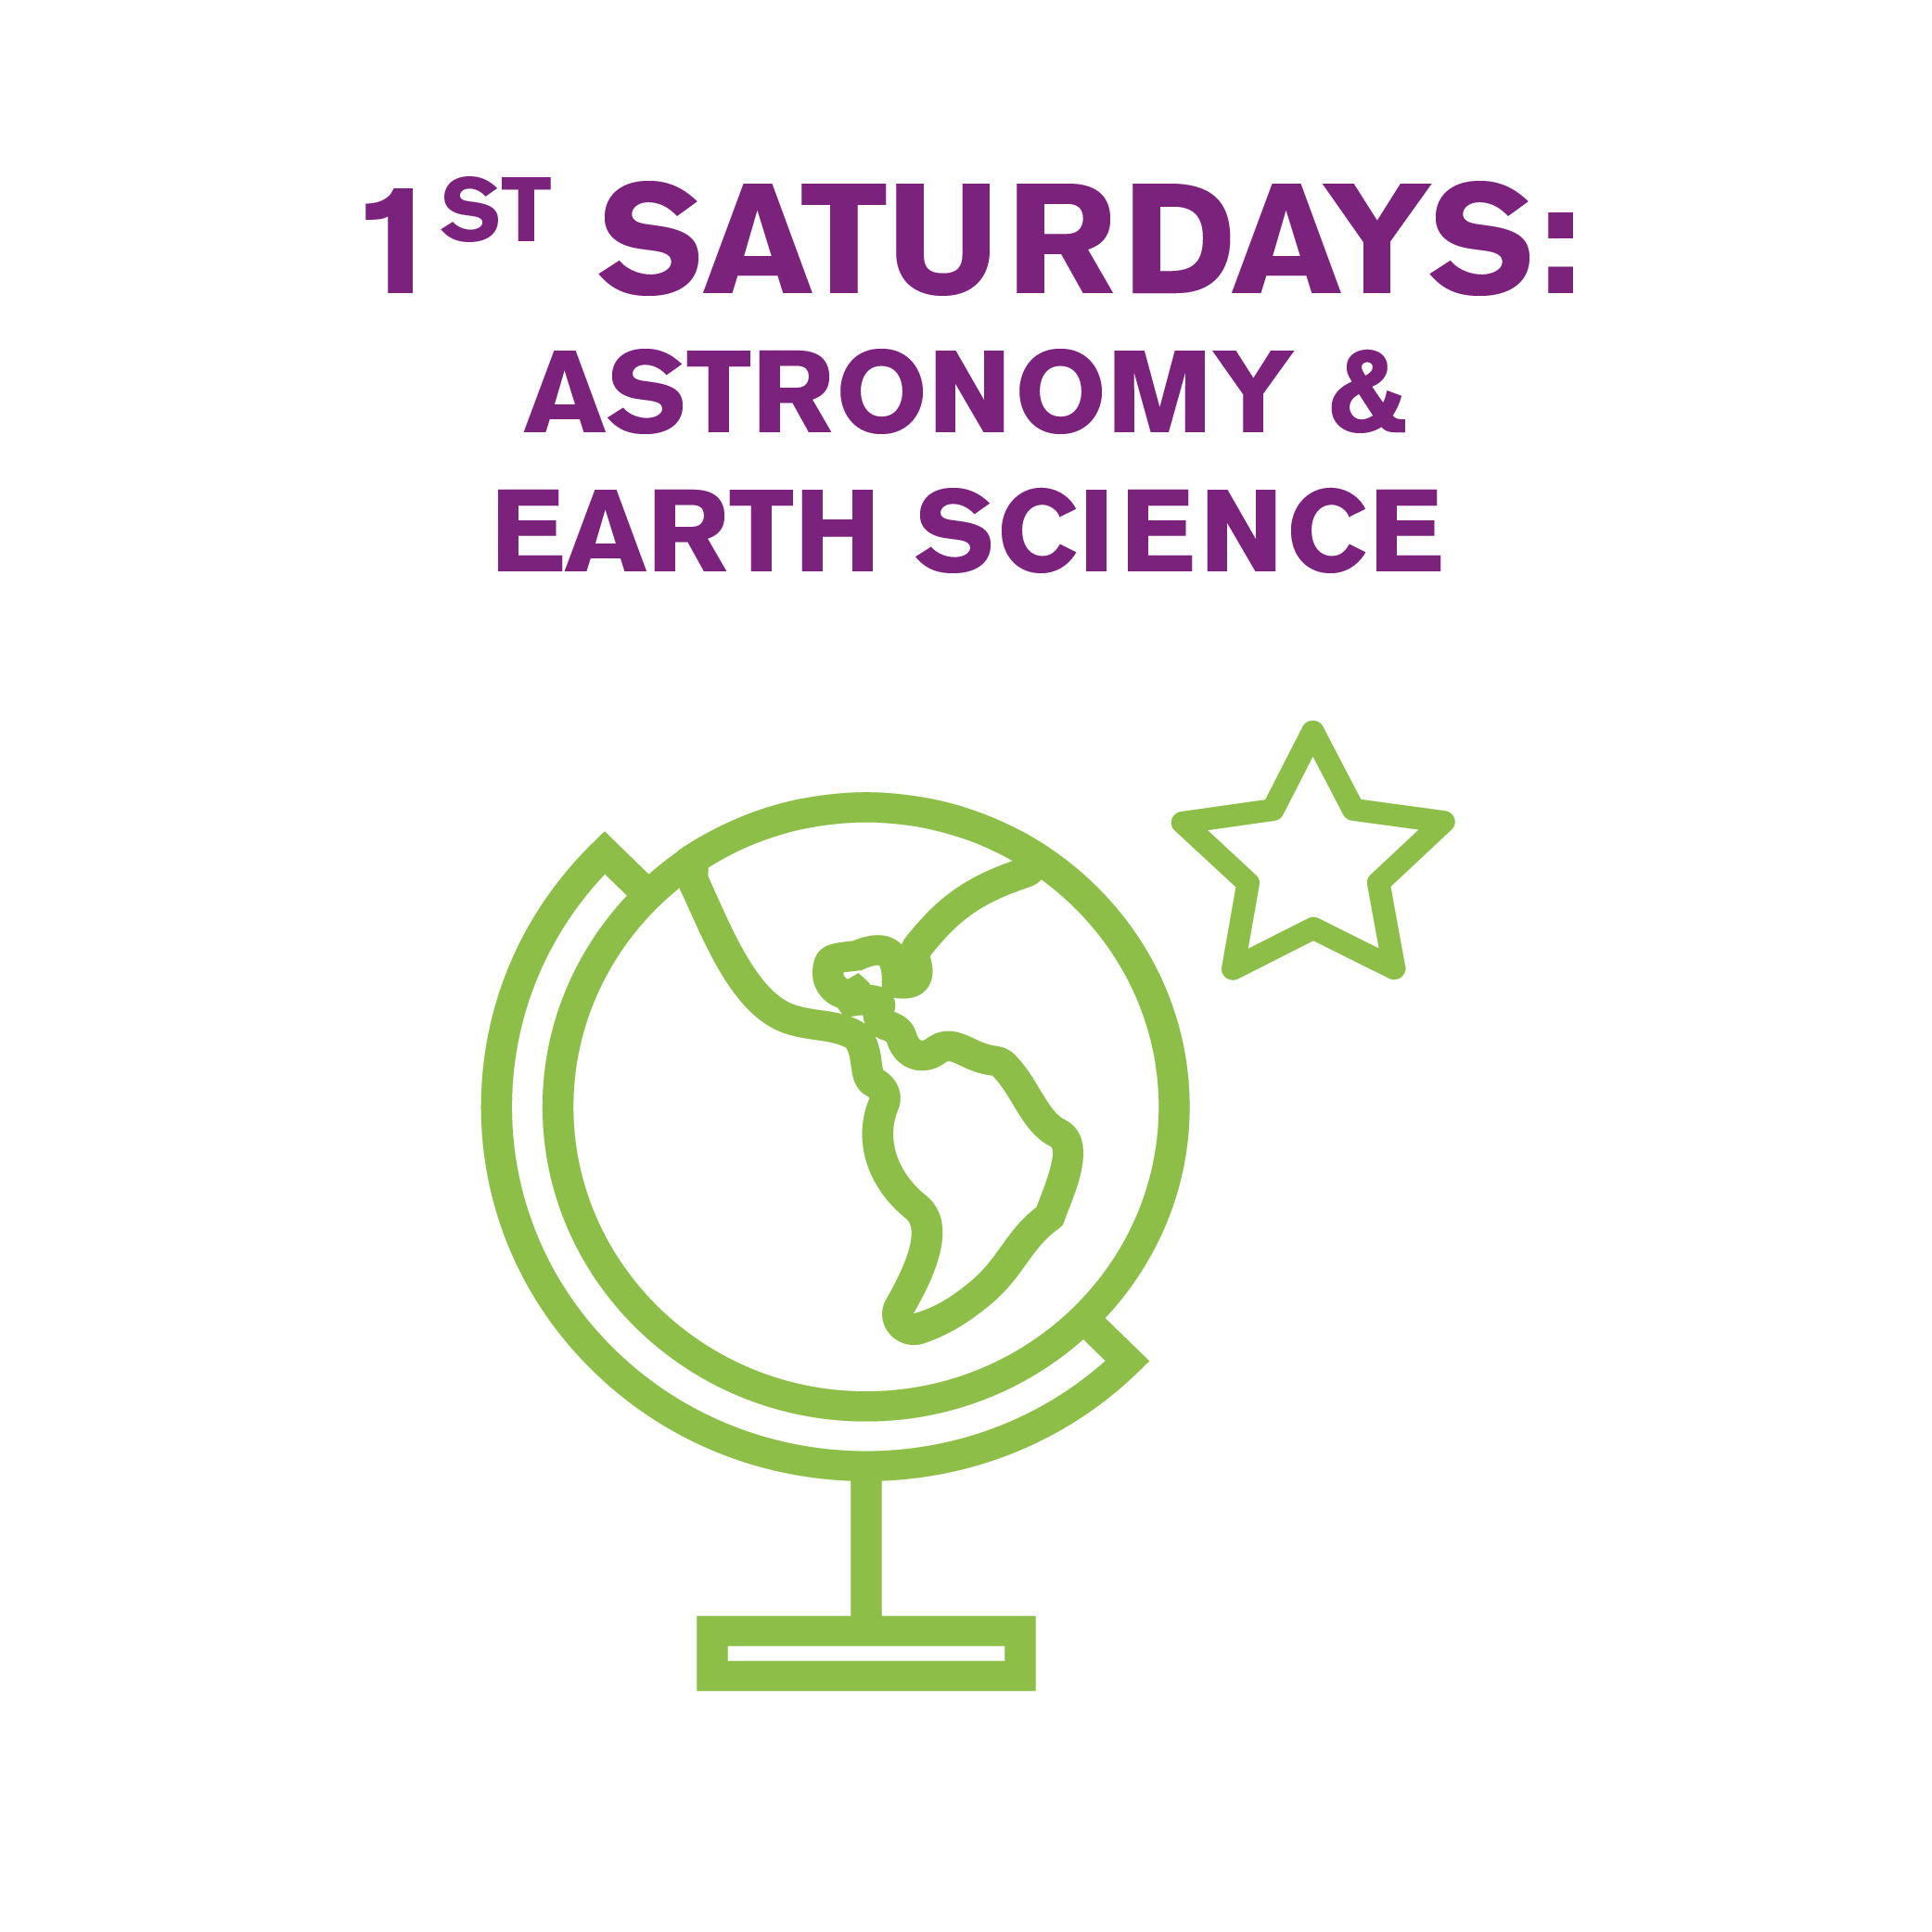 1st Saturdays: Astronomy & Earth Science